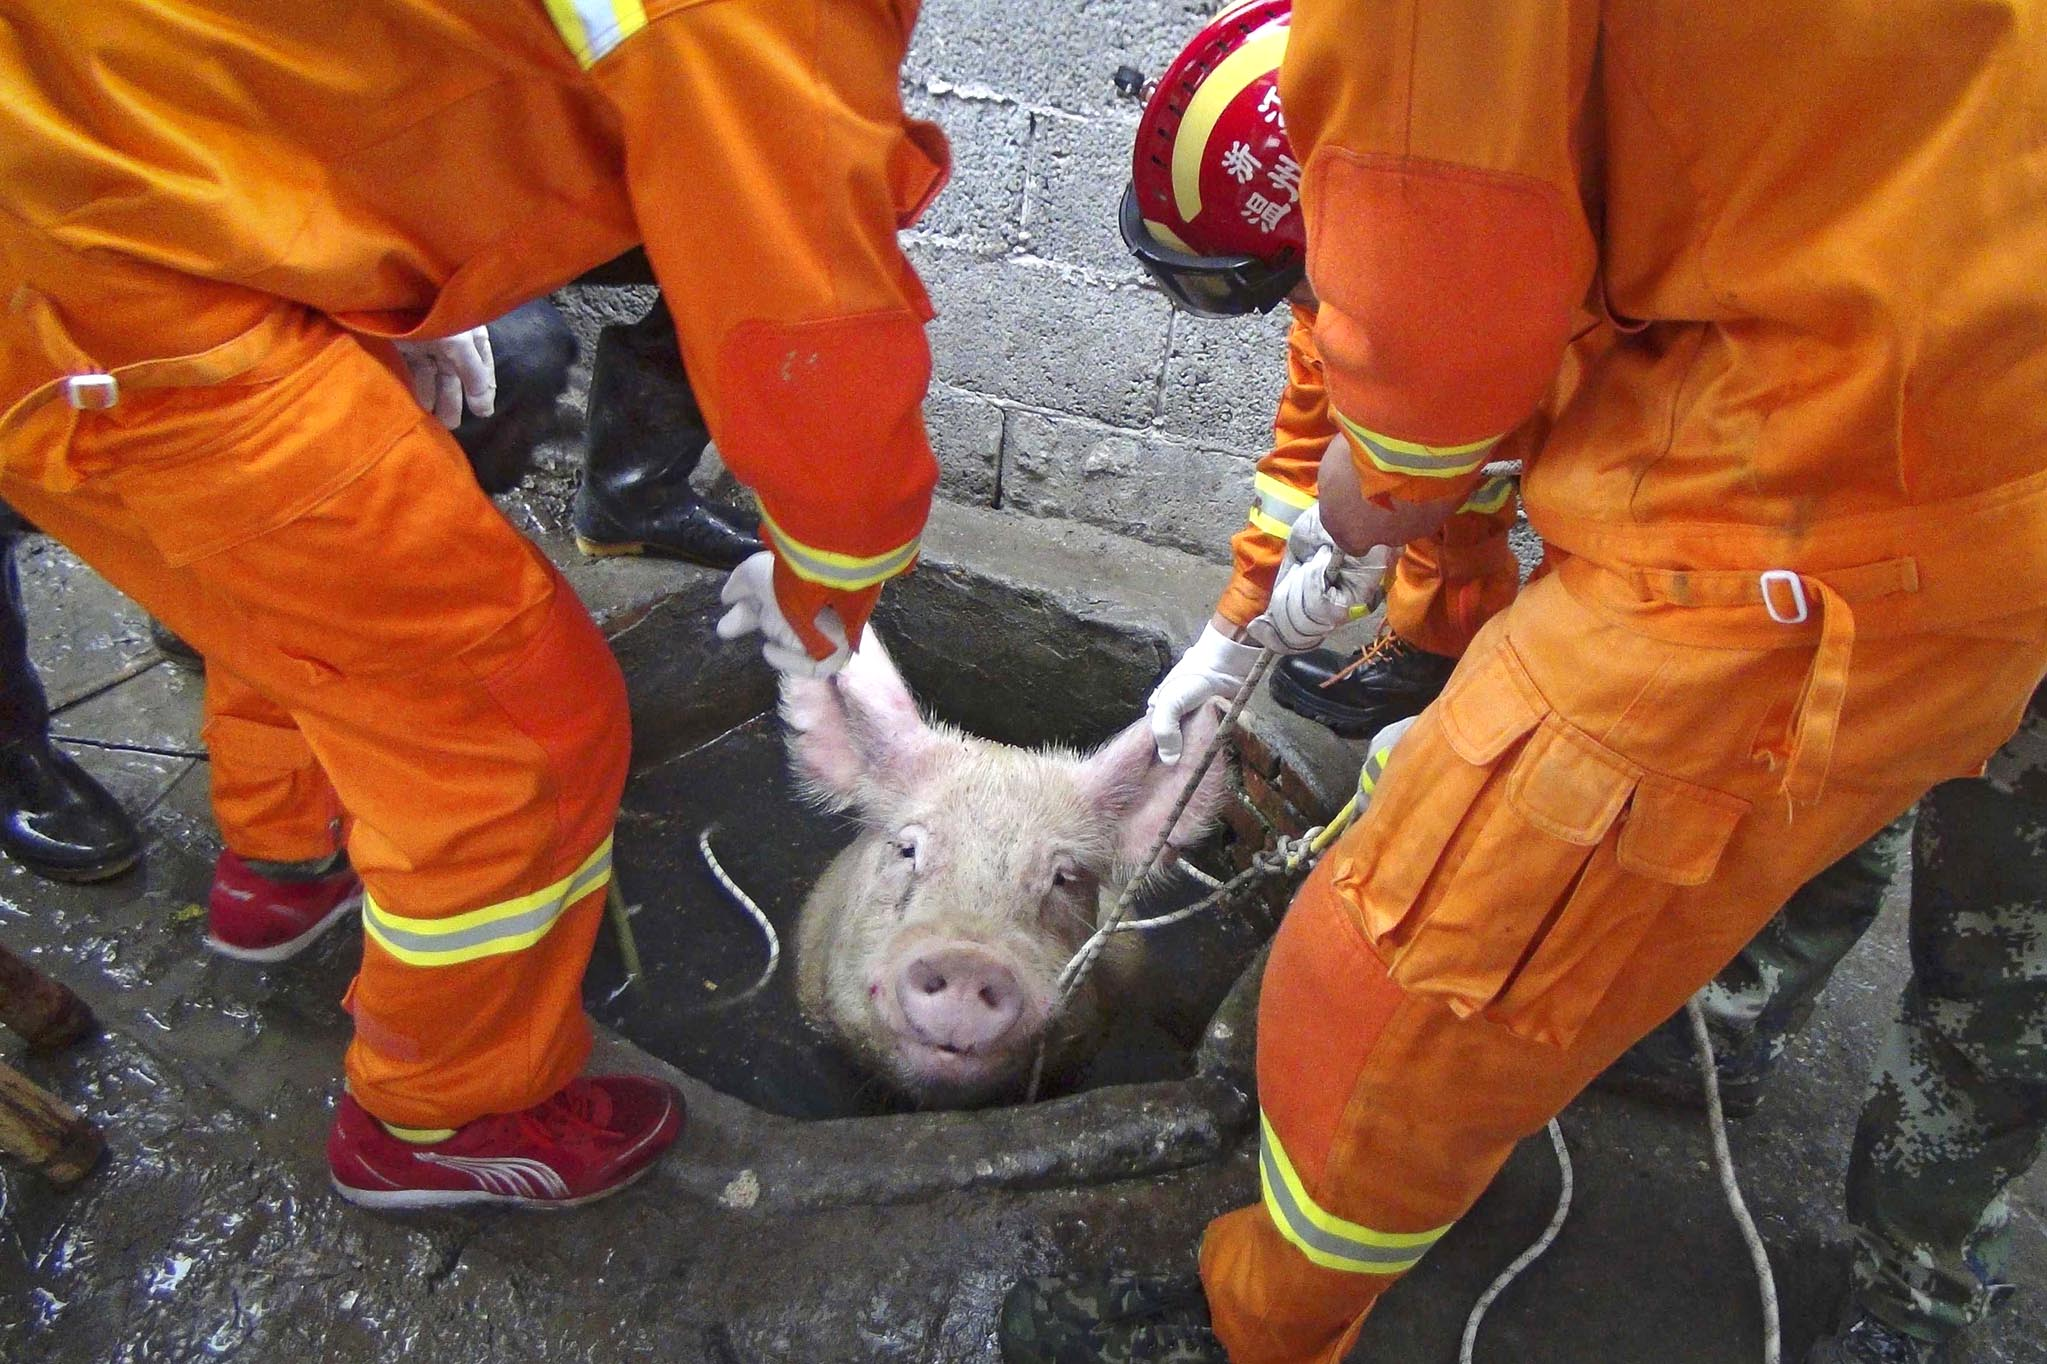 Firefighters pull a pig as they try to rescue it from a well at a pig farm in Zhejiang province